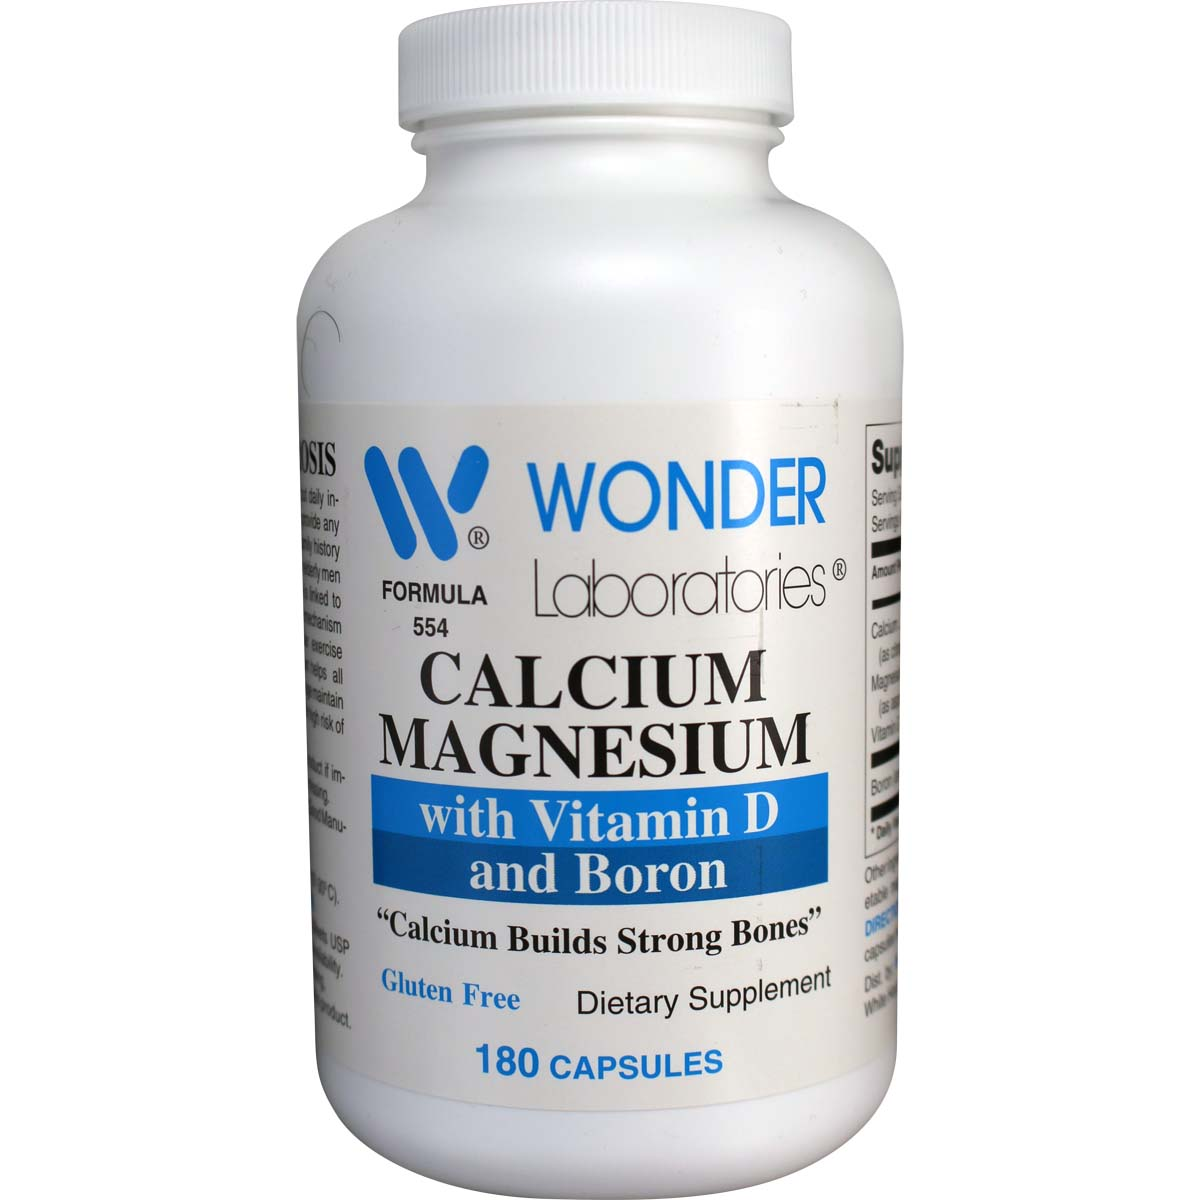 calcium magnesium with vitamin d and boron 180 capsules item 5541. Black Bedroom Furniture Sets. Home Design Ideas